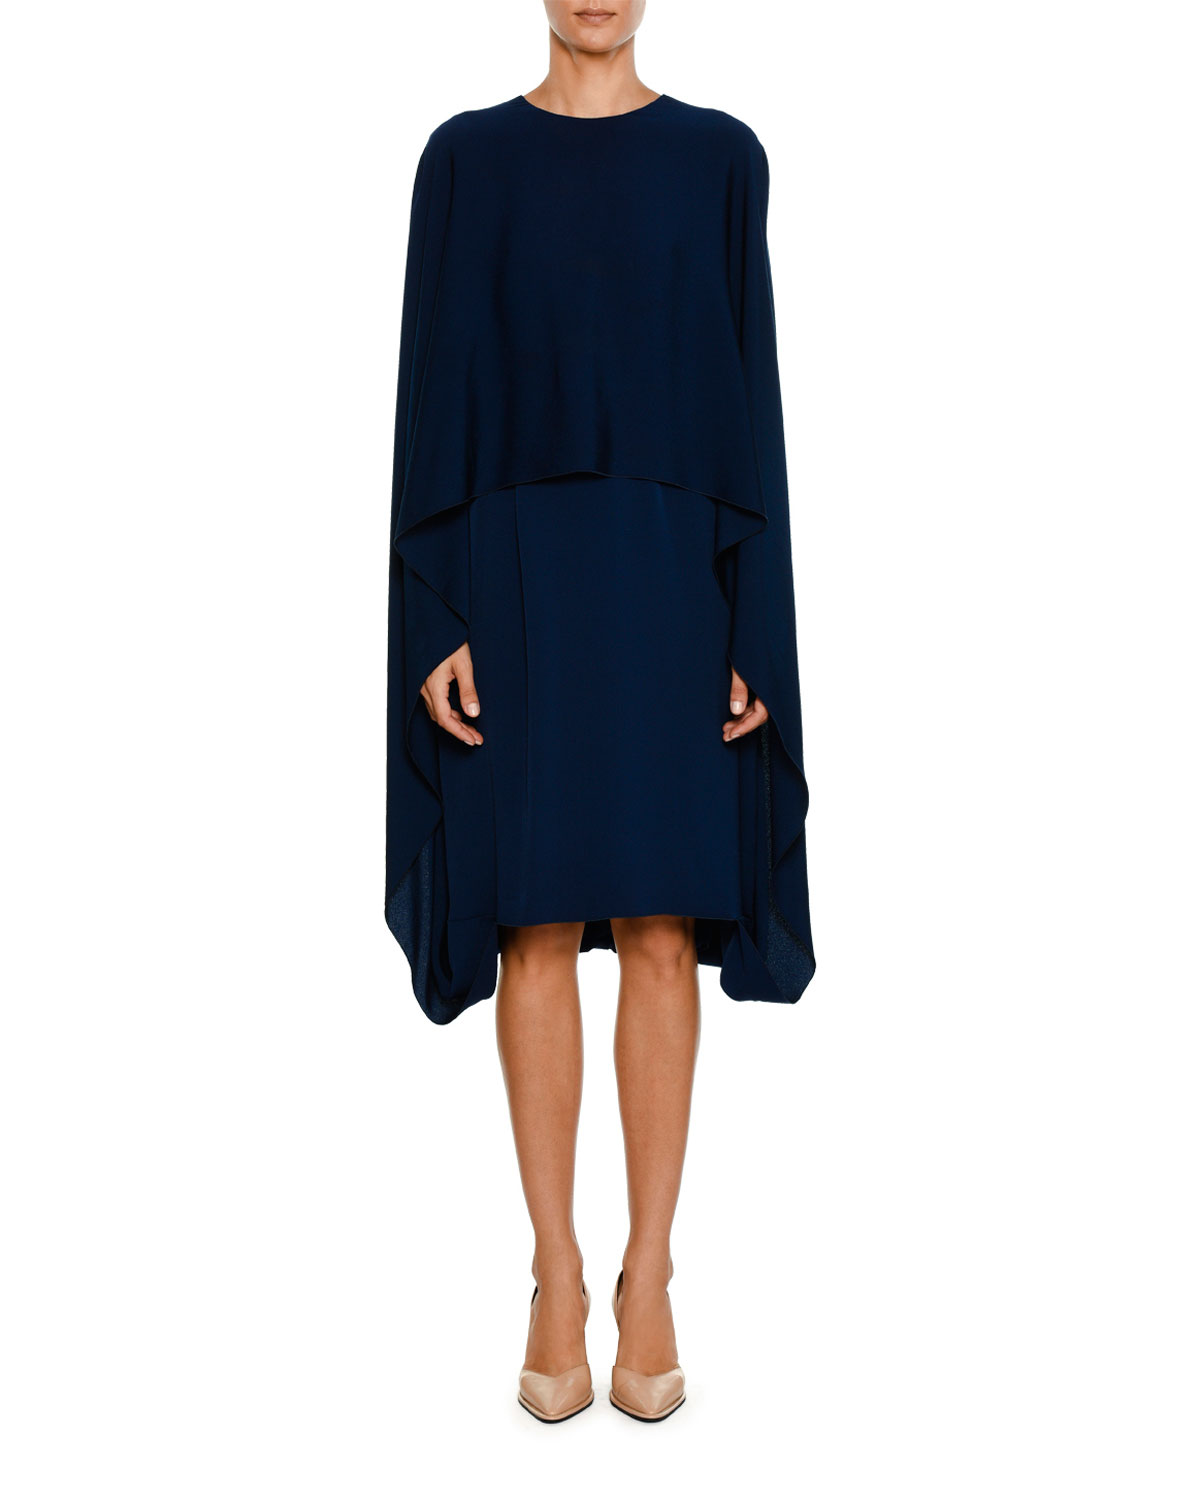 Free Shipping Reliable Pay With Visa DRESSES - Short dresses Stella McCartney Sale Finishline Buy Cheap Cheap Free Shipping Sale txEjU